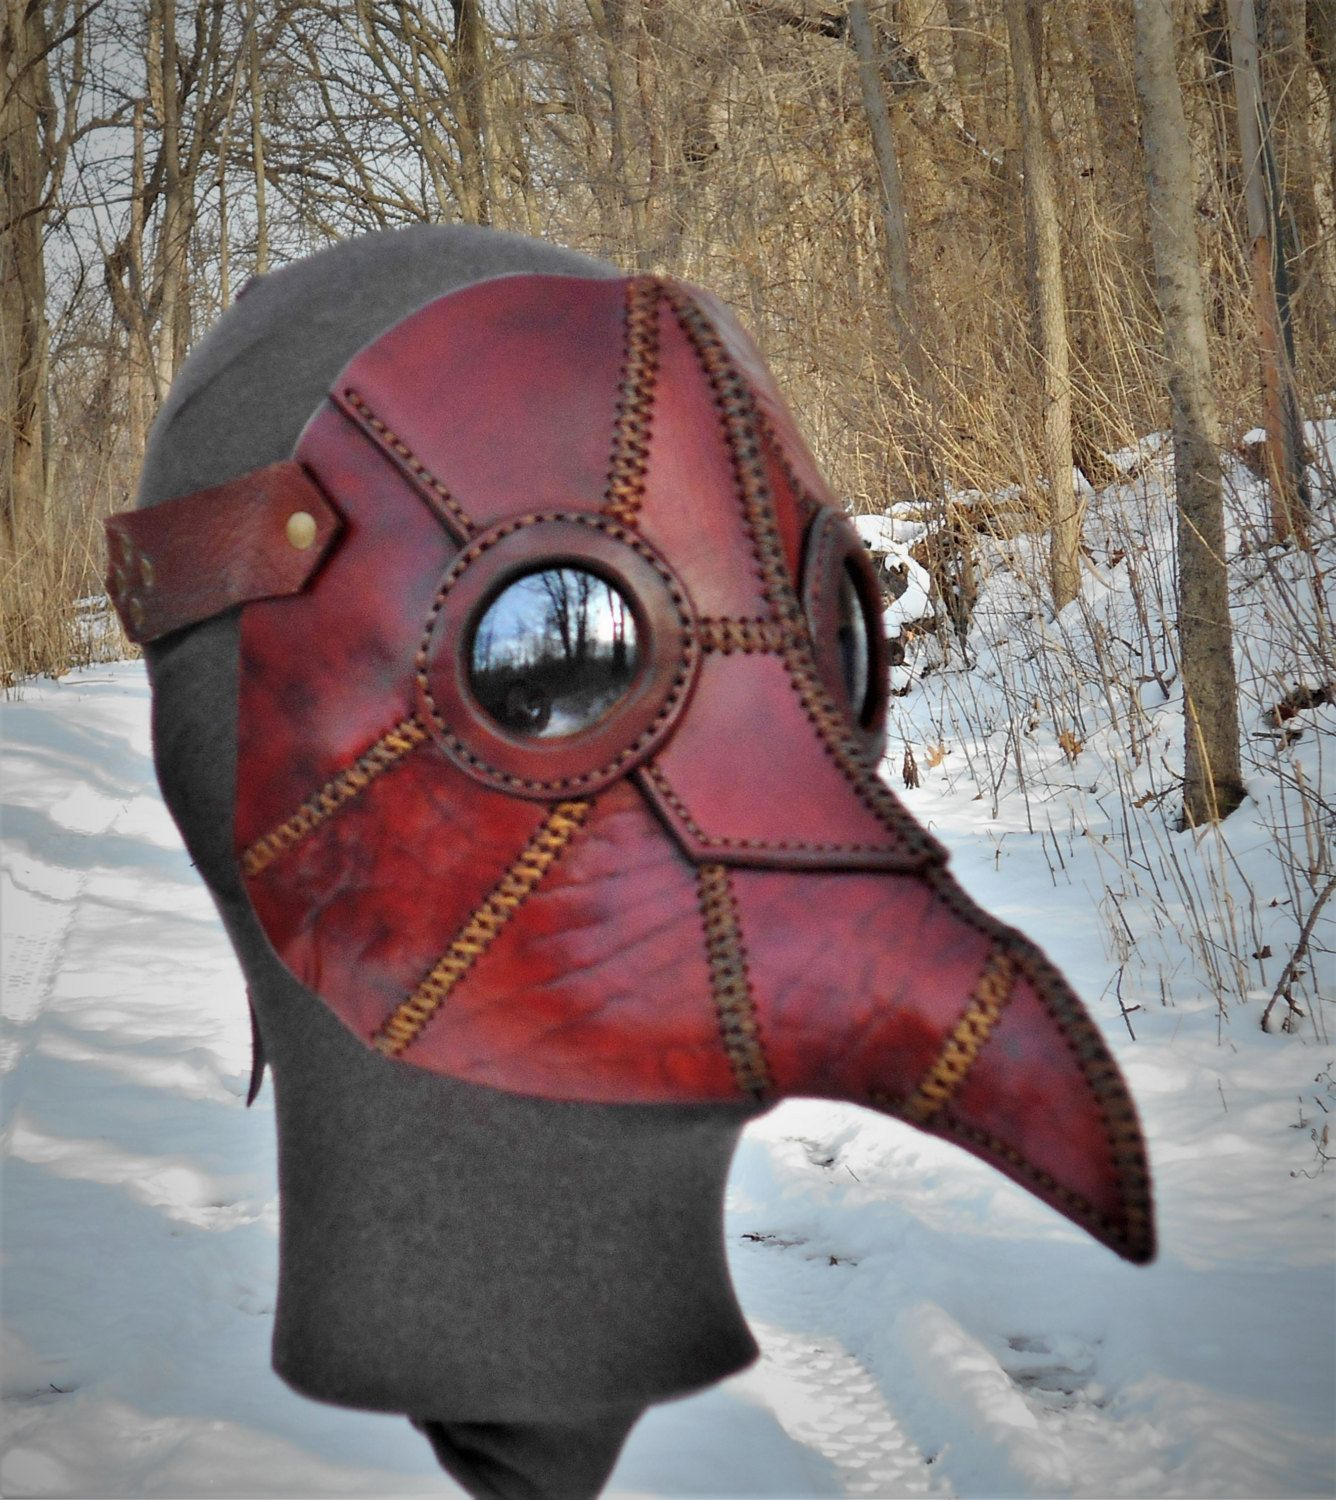 Leather Mask Apocalyptic Dystopia Rising Futuristic Survivor Plague Doctor Cosplay LARP by LAFuellingFacades on Etsy